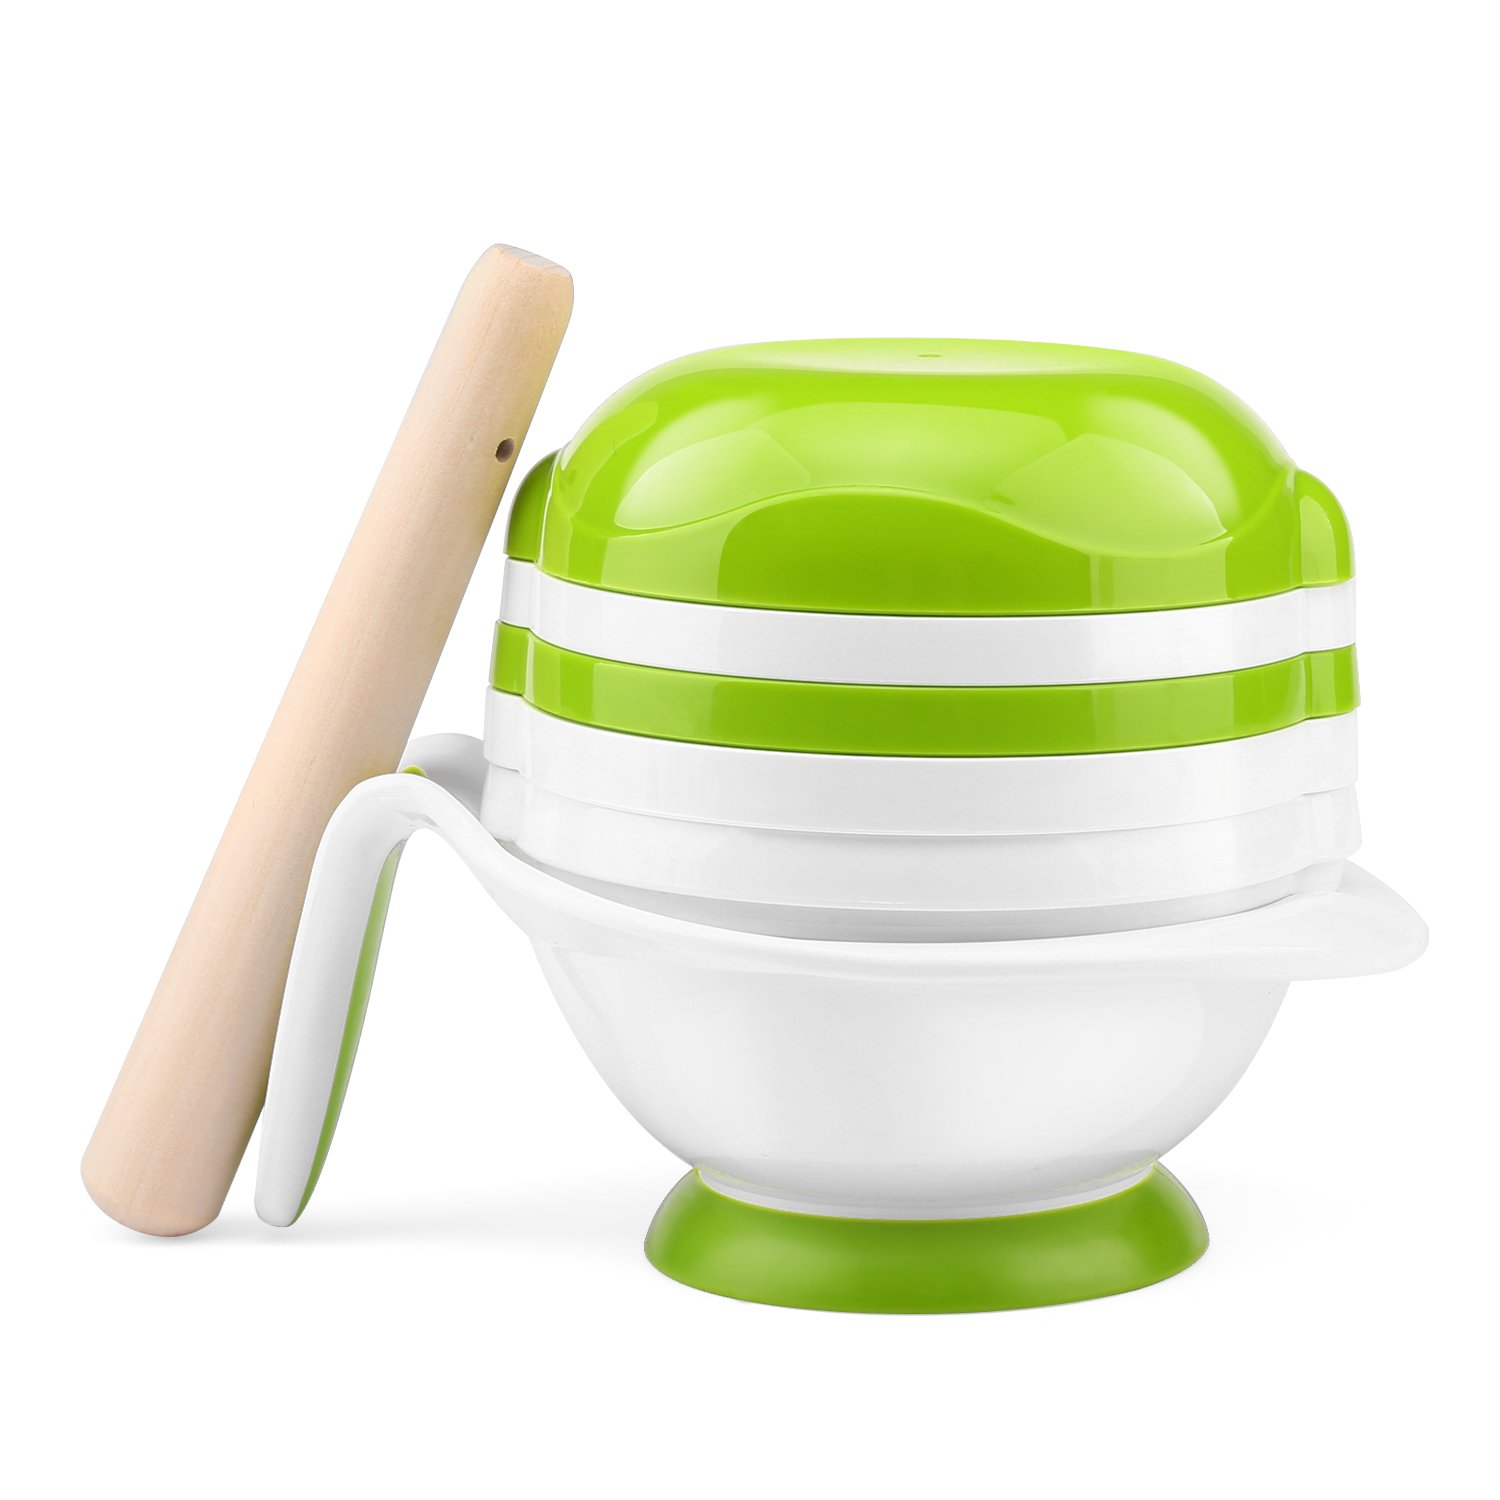 Zooawa Baby Food Masher, 8 in 1 Fresh Food & Fruit Masher Maker Feeder Serve Bowl for Homemade Baby Kids Food, White